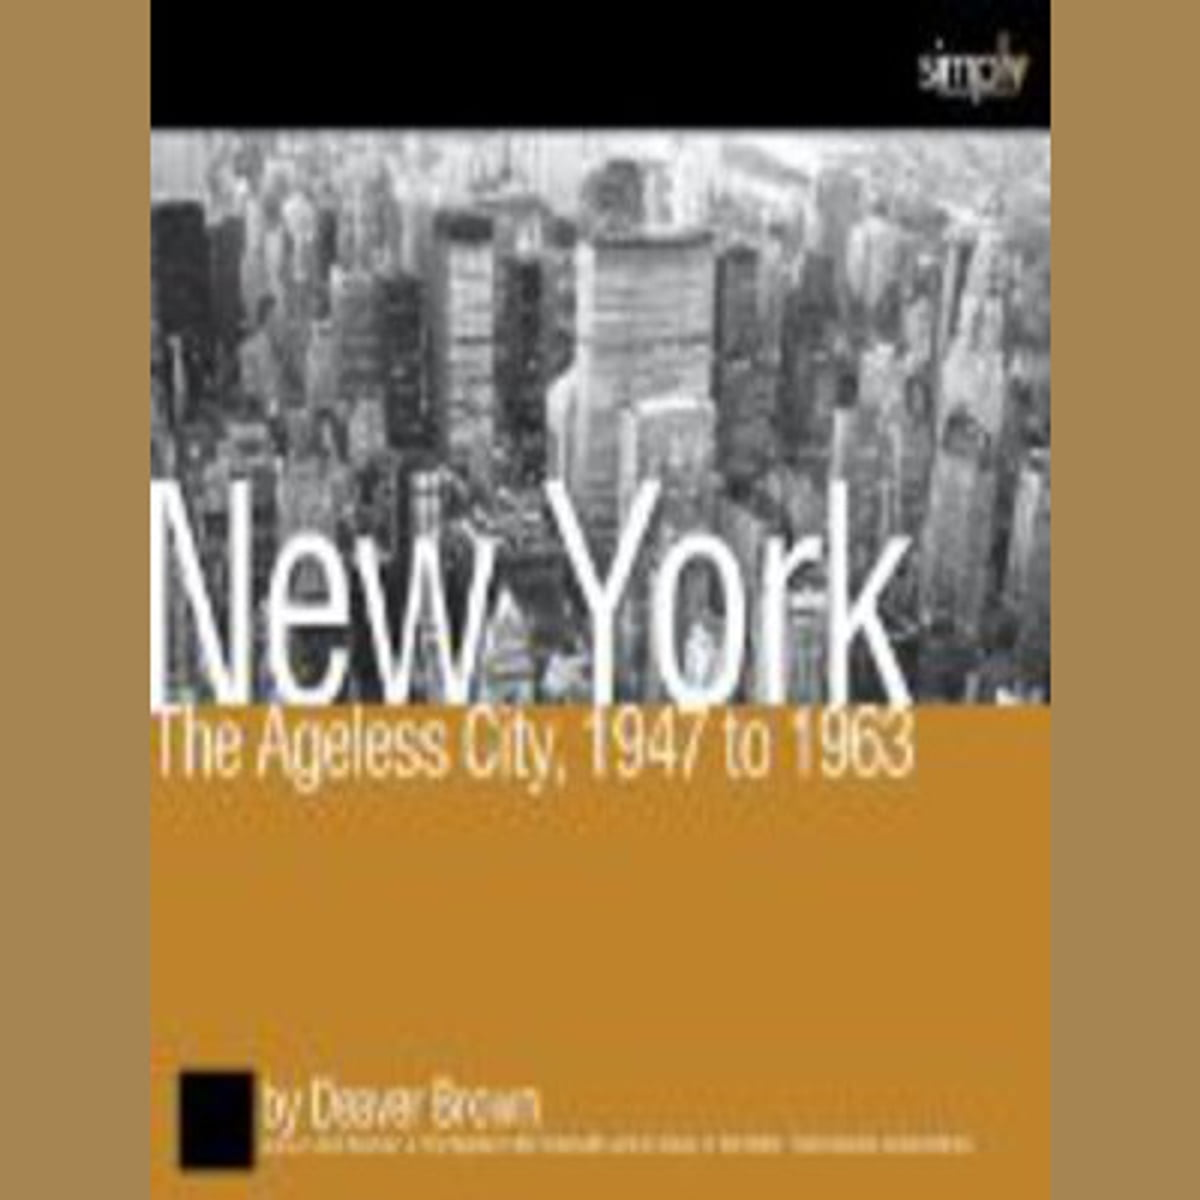 New York, The Ageless City Audiobook by Deaver Brown - 9781614961895 |  Rakuten Kobo